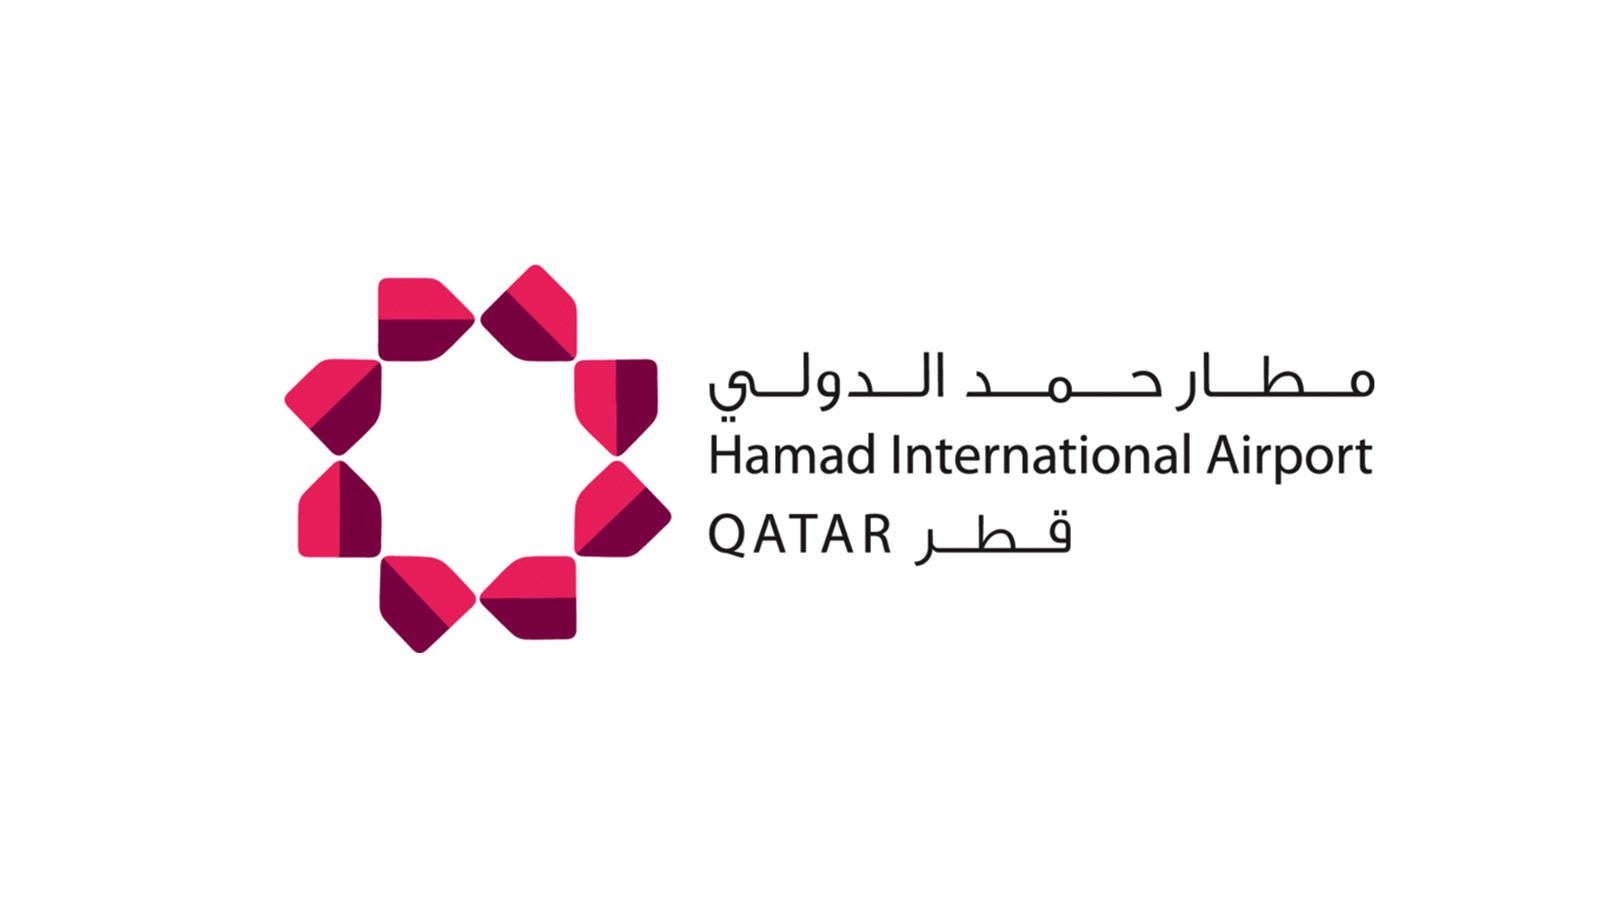 HIA successfully completes full-scale emergency exercise